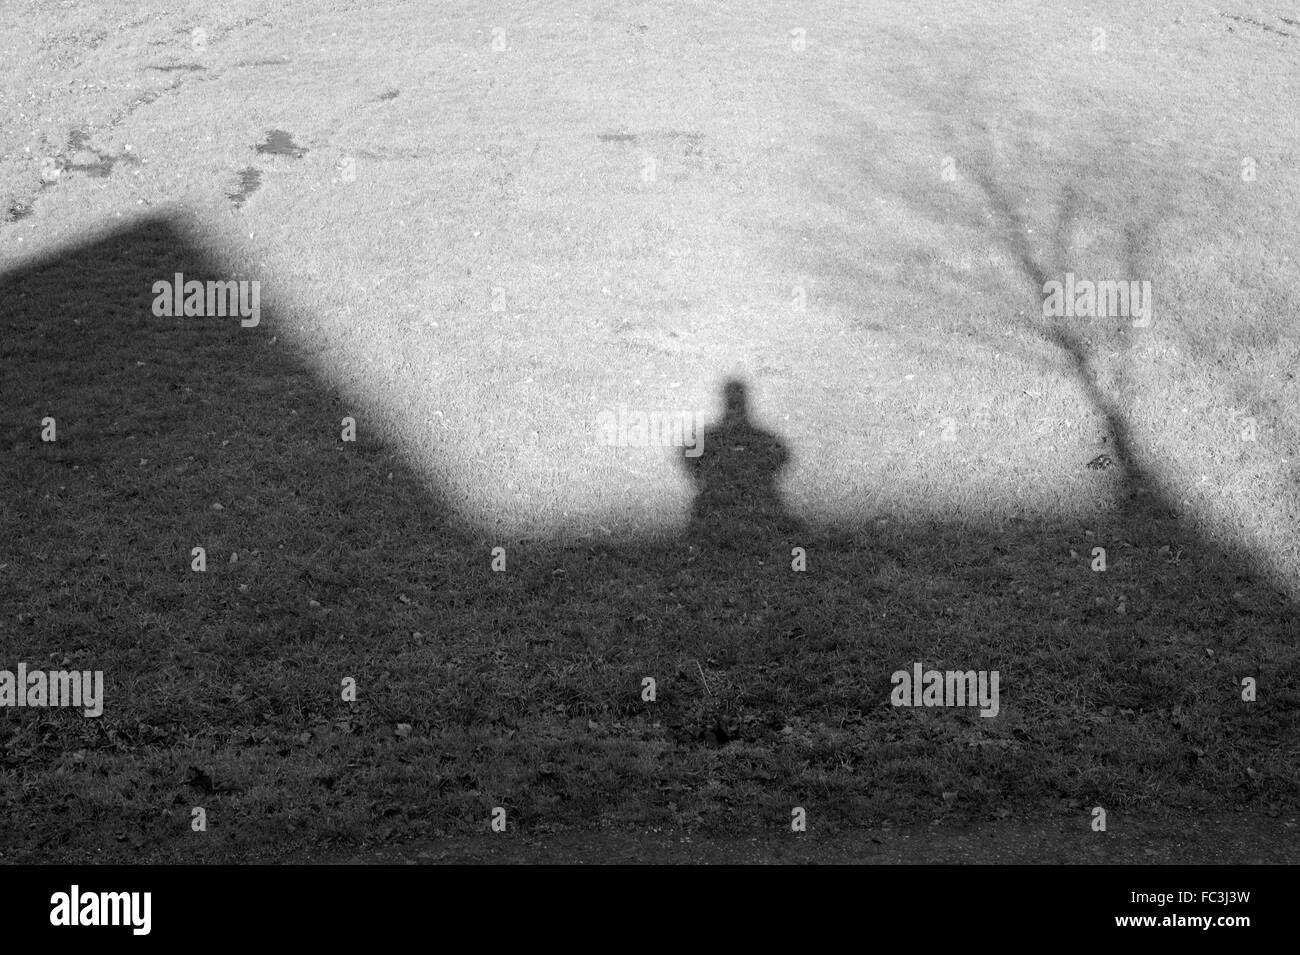 shadows-of-a-man-house-and-bare-tree-cas